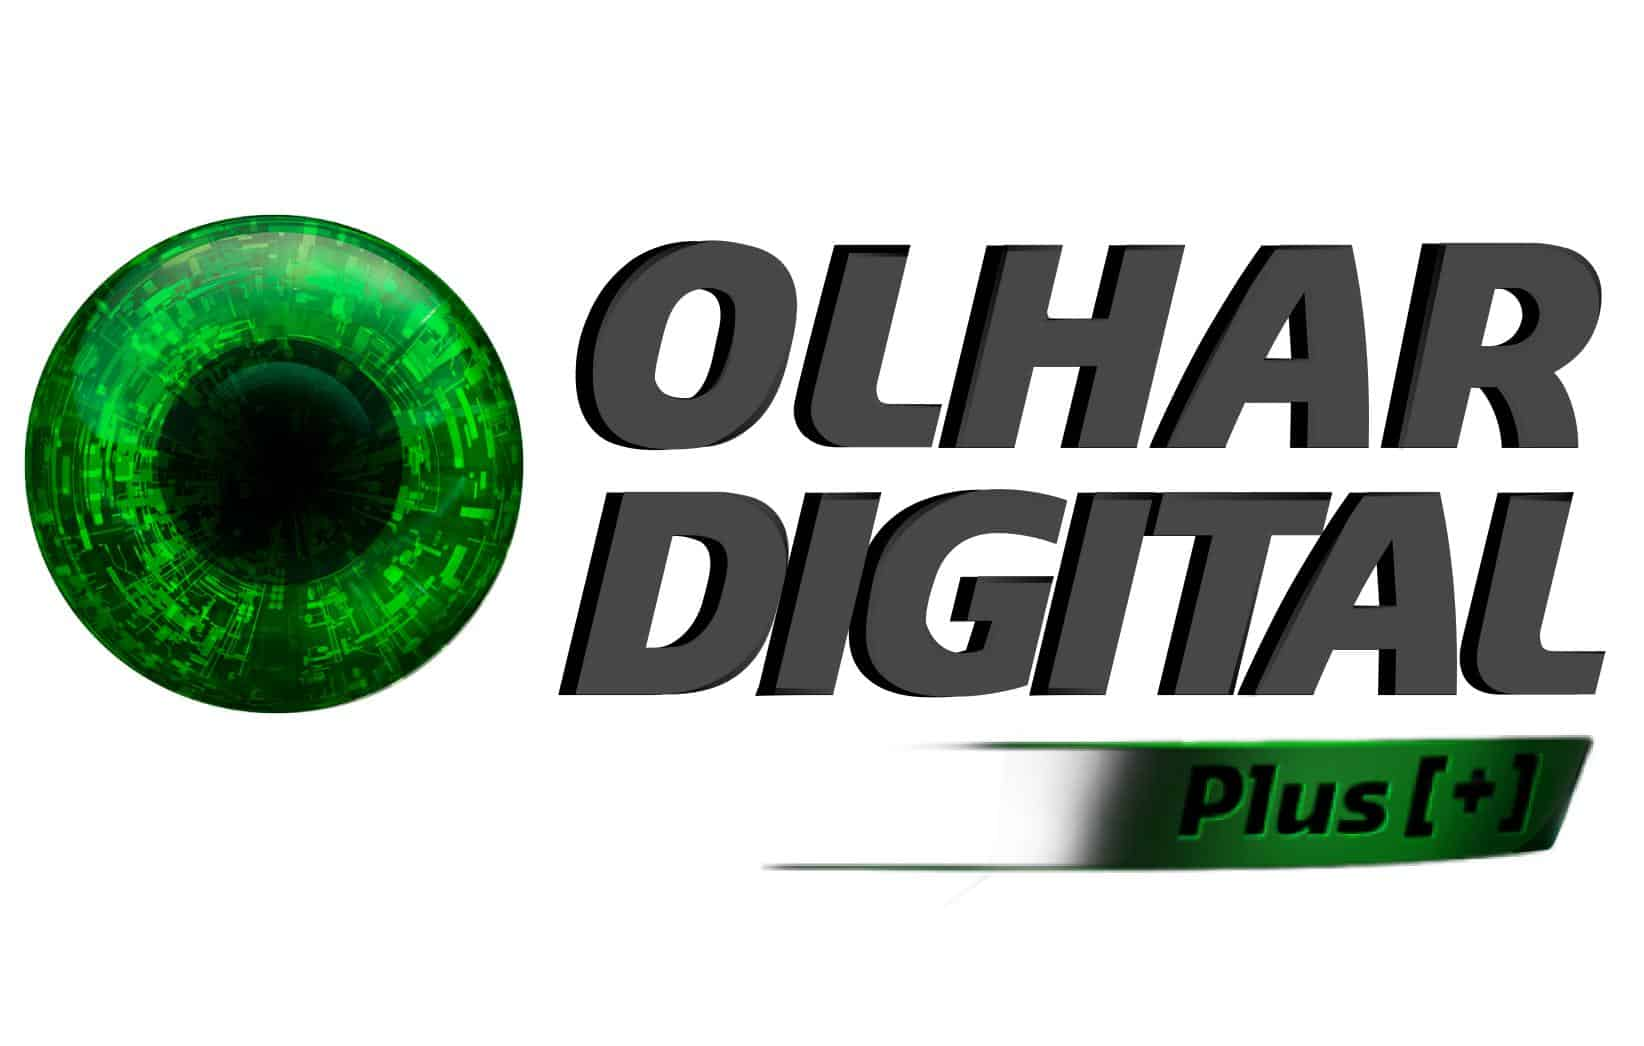 Os destaques do Olhar Digital Plus [+] desta semana